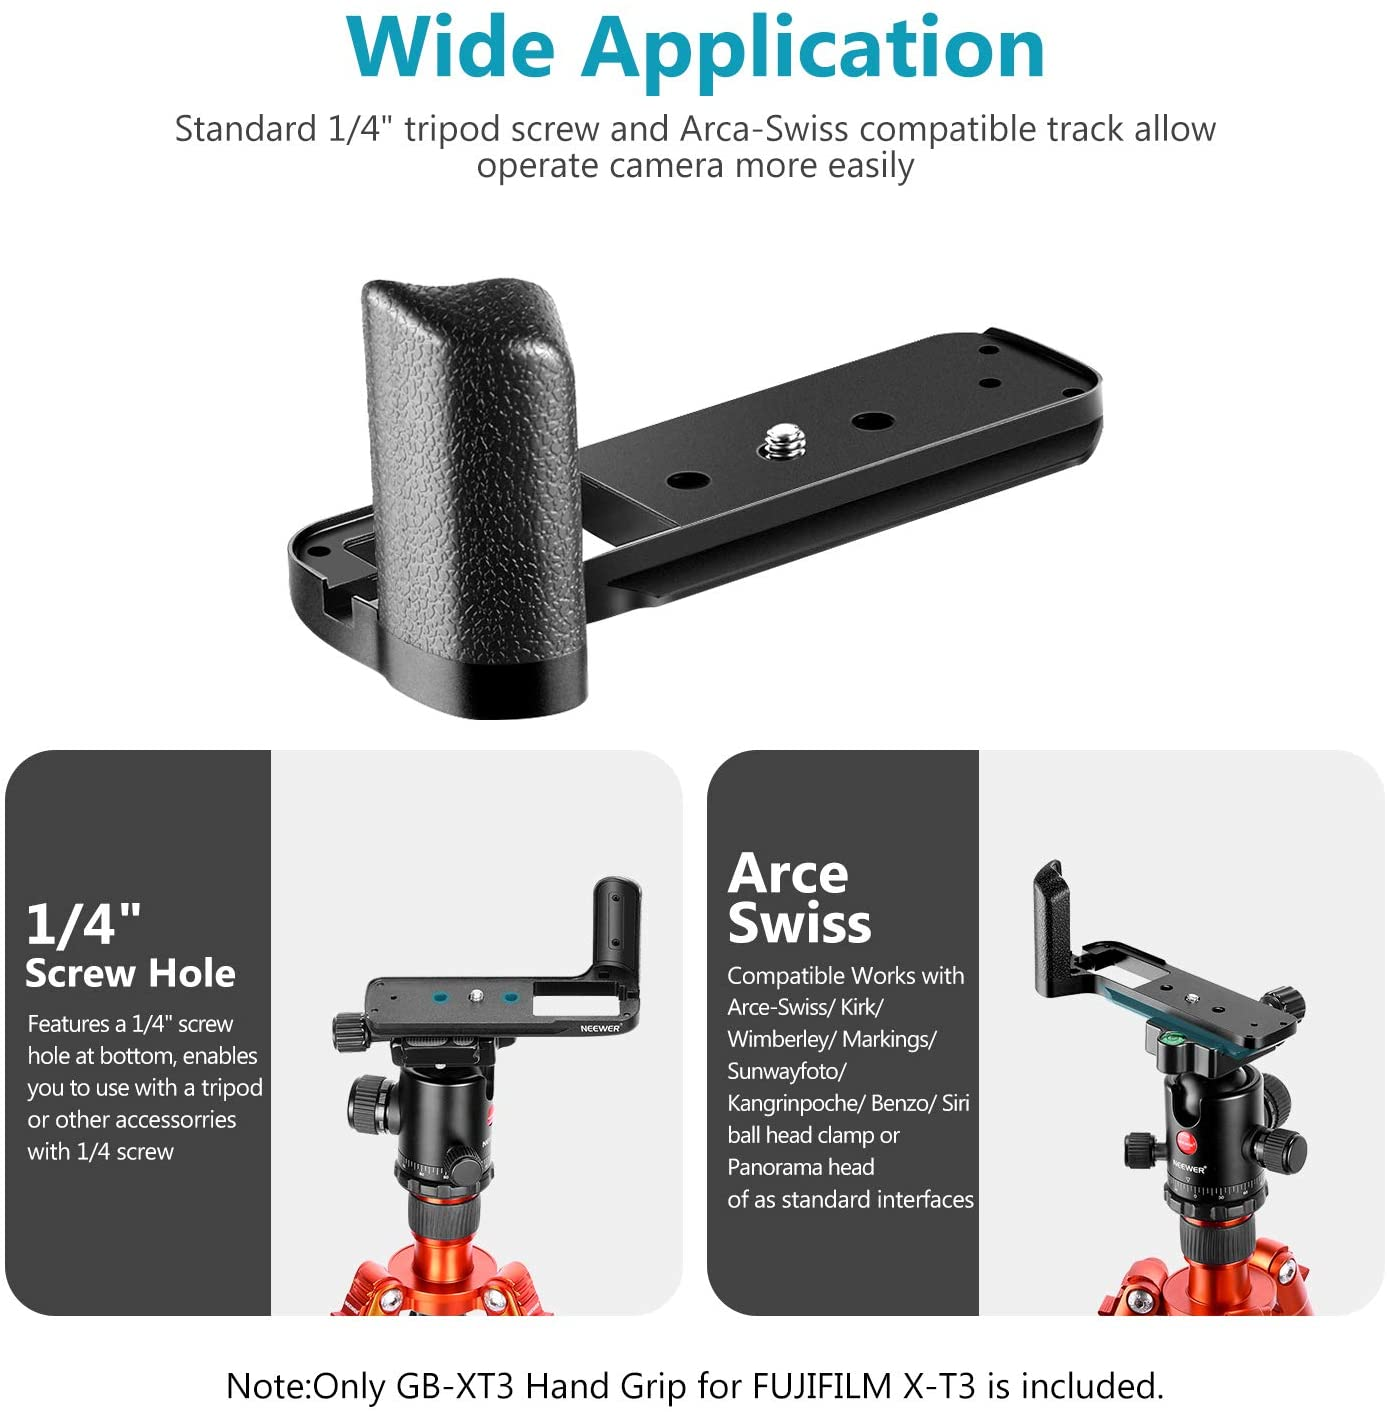 Neewer Replacement for GB-XT3 QR Plate L Bracket MHG-XT3 Replacement for Fujifilm Mirrorless Camera X-T3 Aluminum Alloy Hand Grip